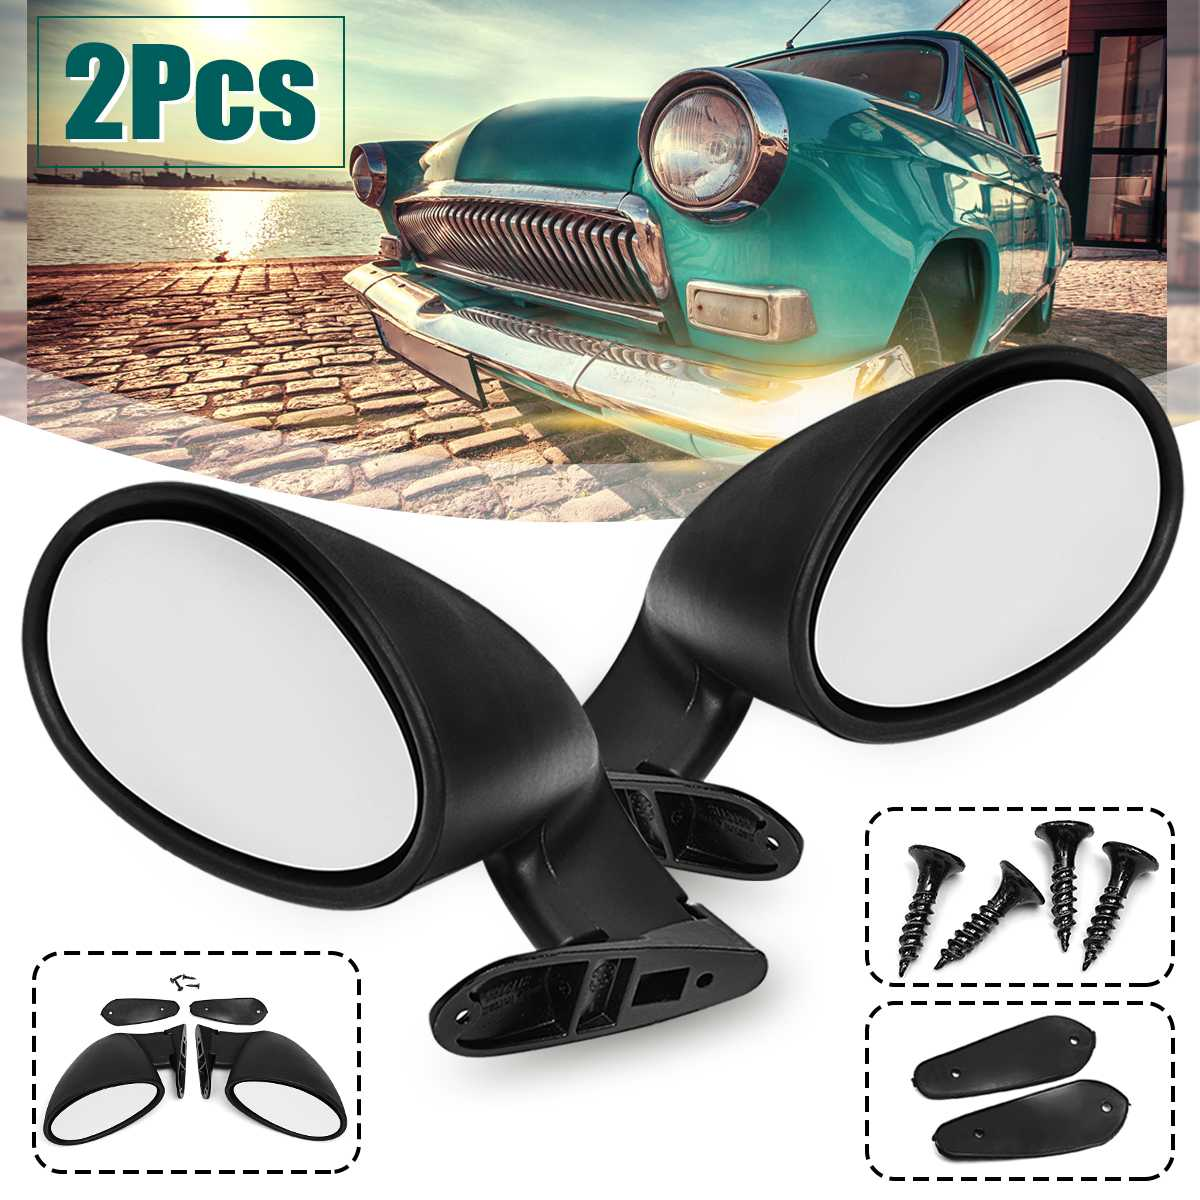 L+R Racing California Universal Retro Door Wing Side Mirror Universal Fit Vintage Matte Black Mirror Motorcycles Parts